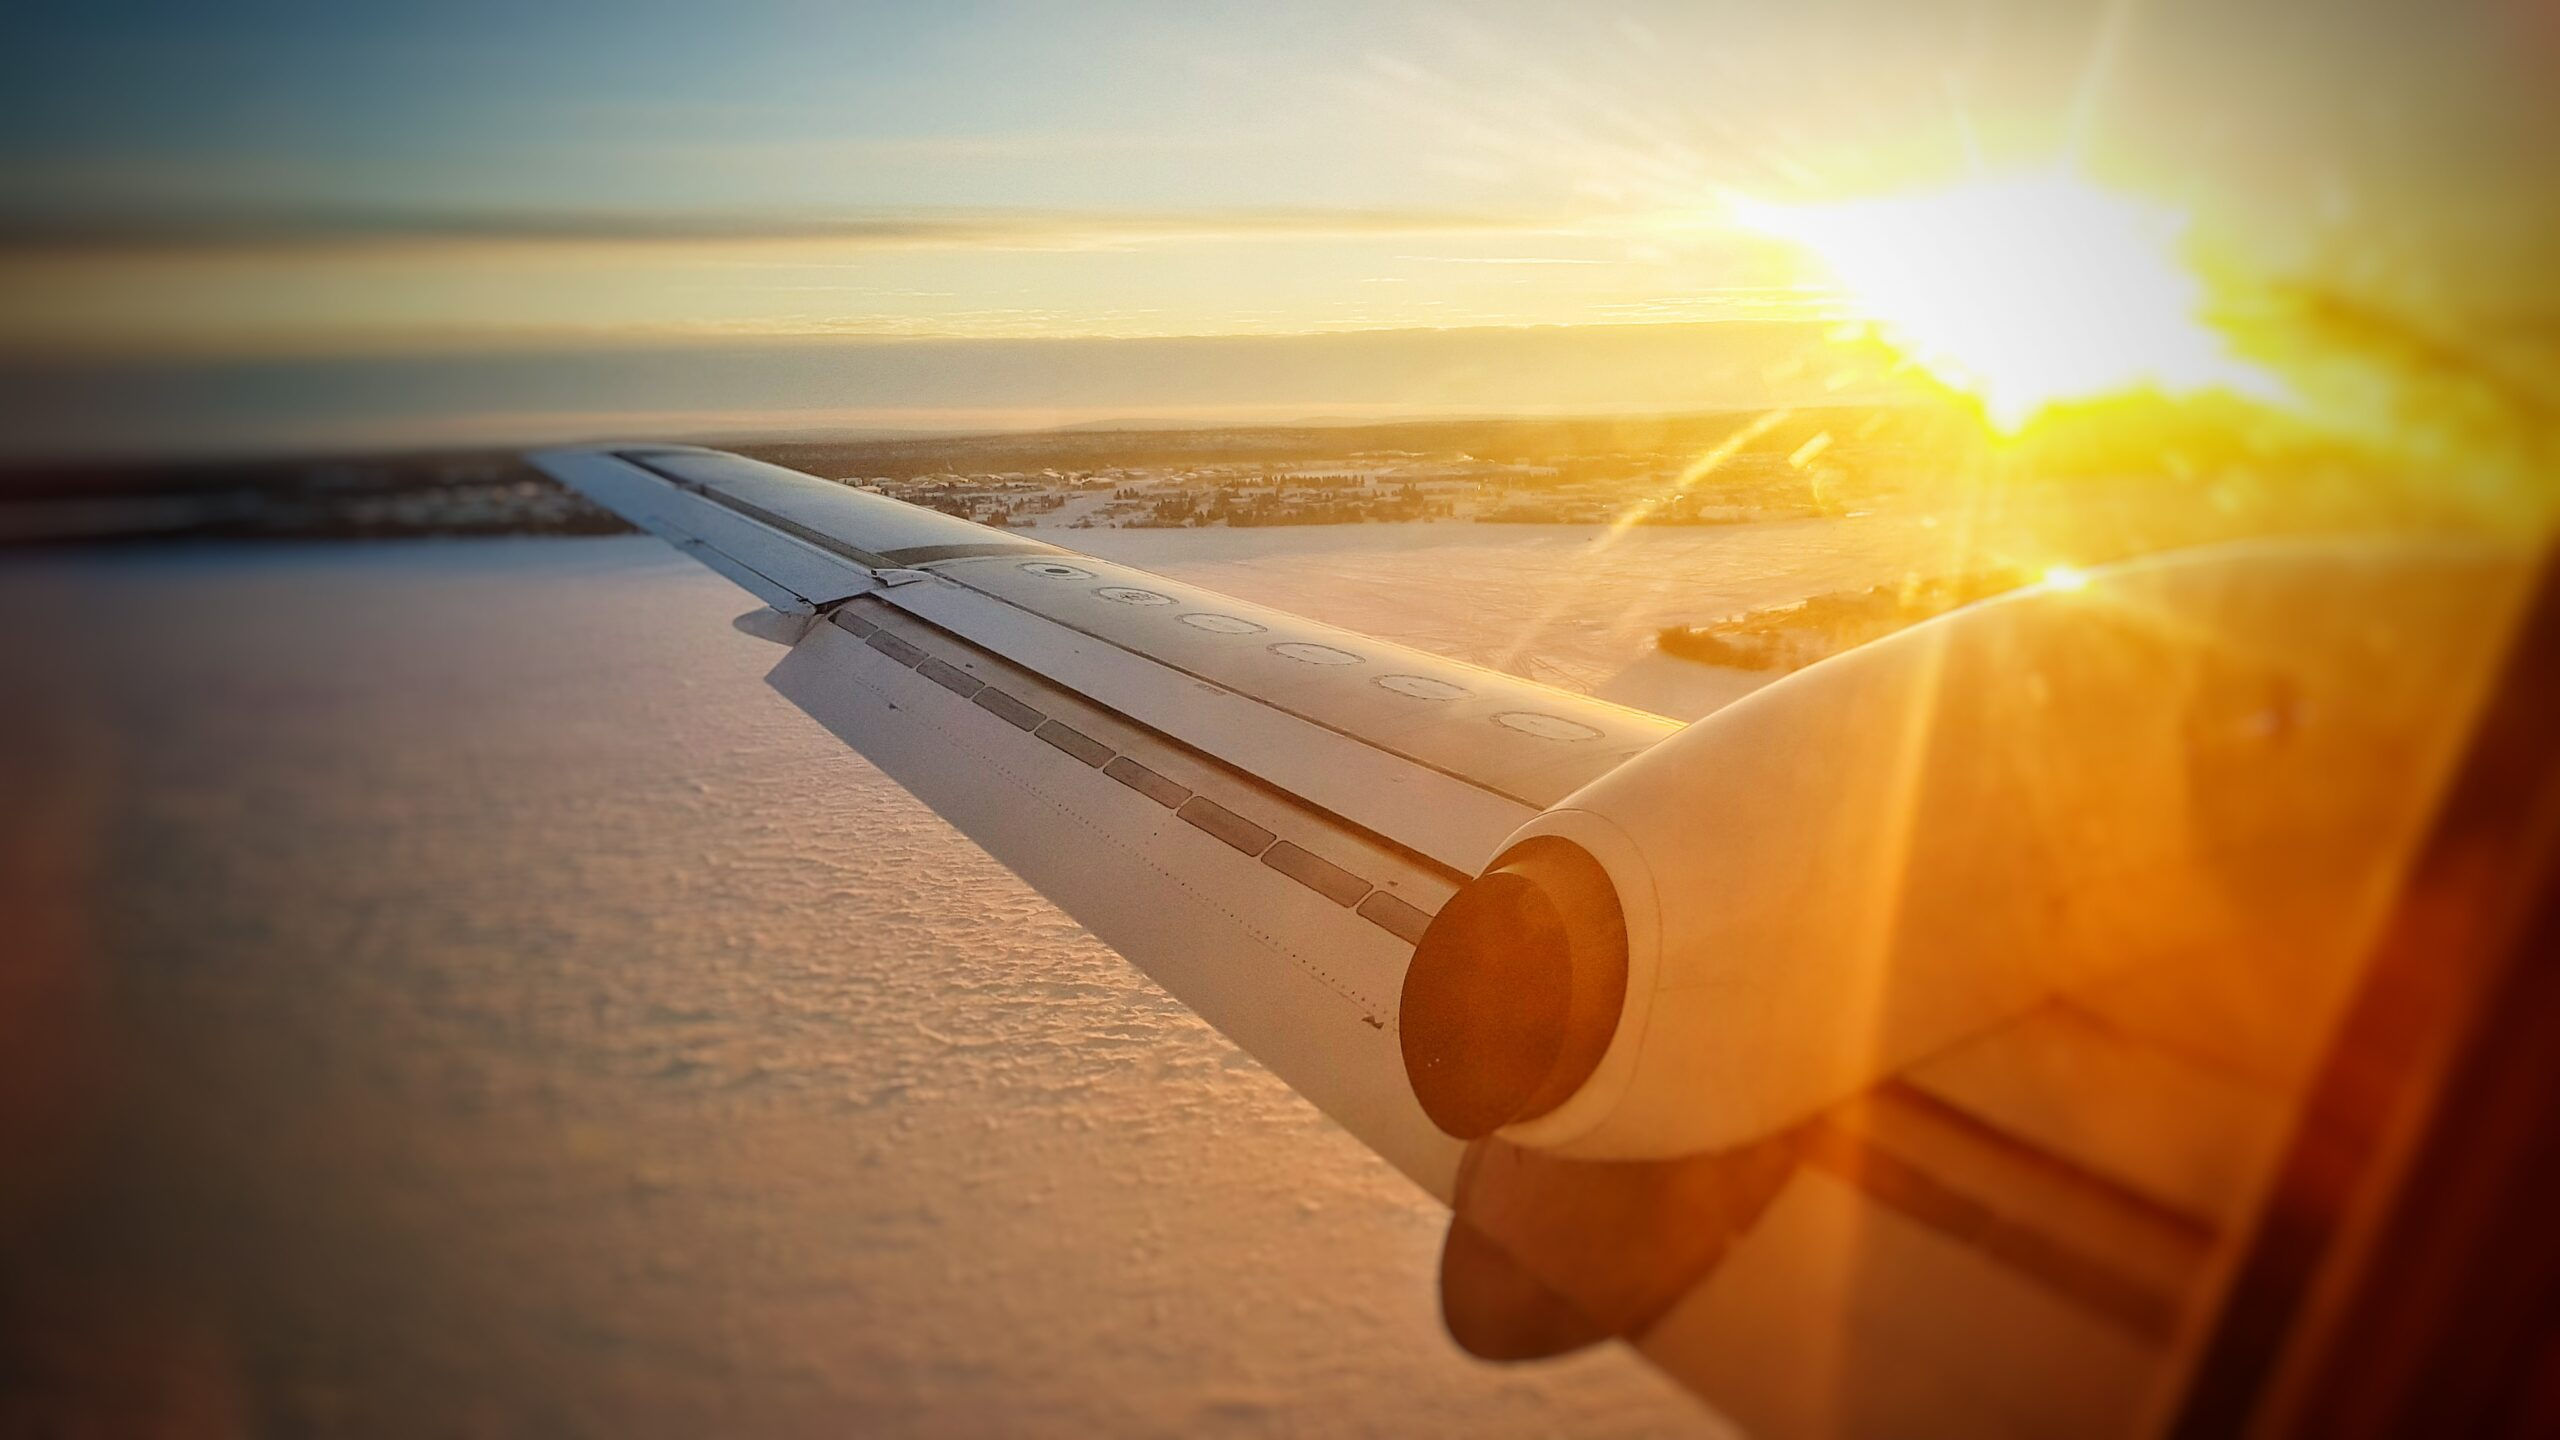 Plane to Athabasca